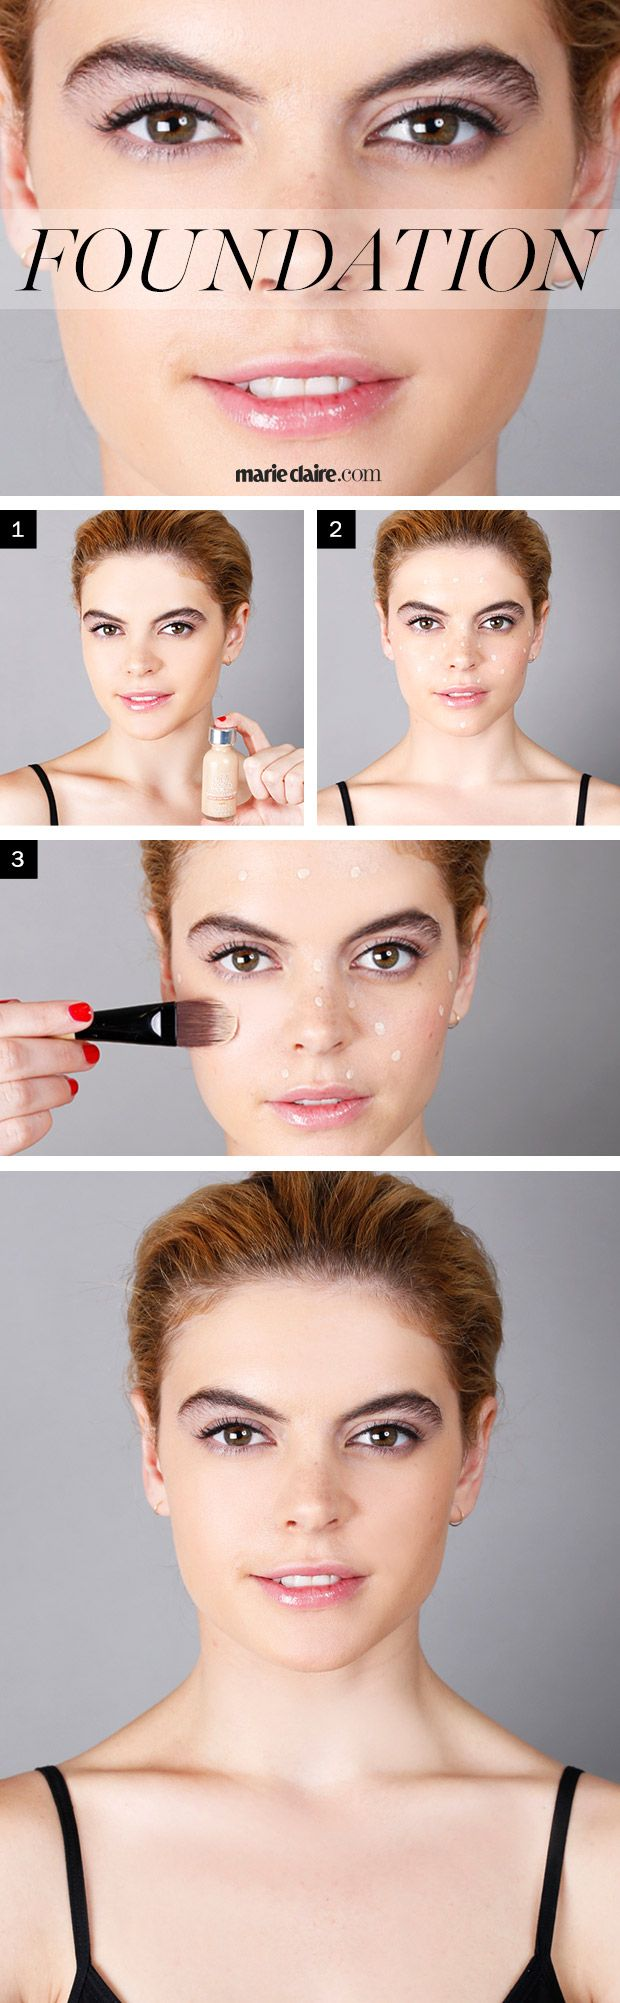 How to Apply Foundation - Right Way to Apply Foundation - Marie Claire